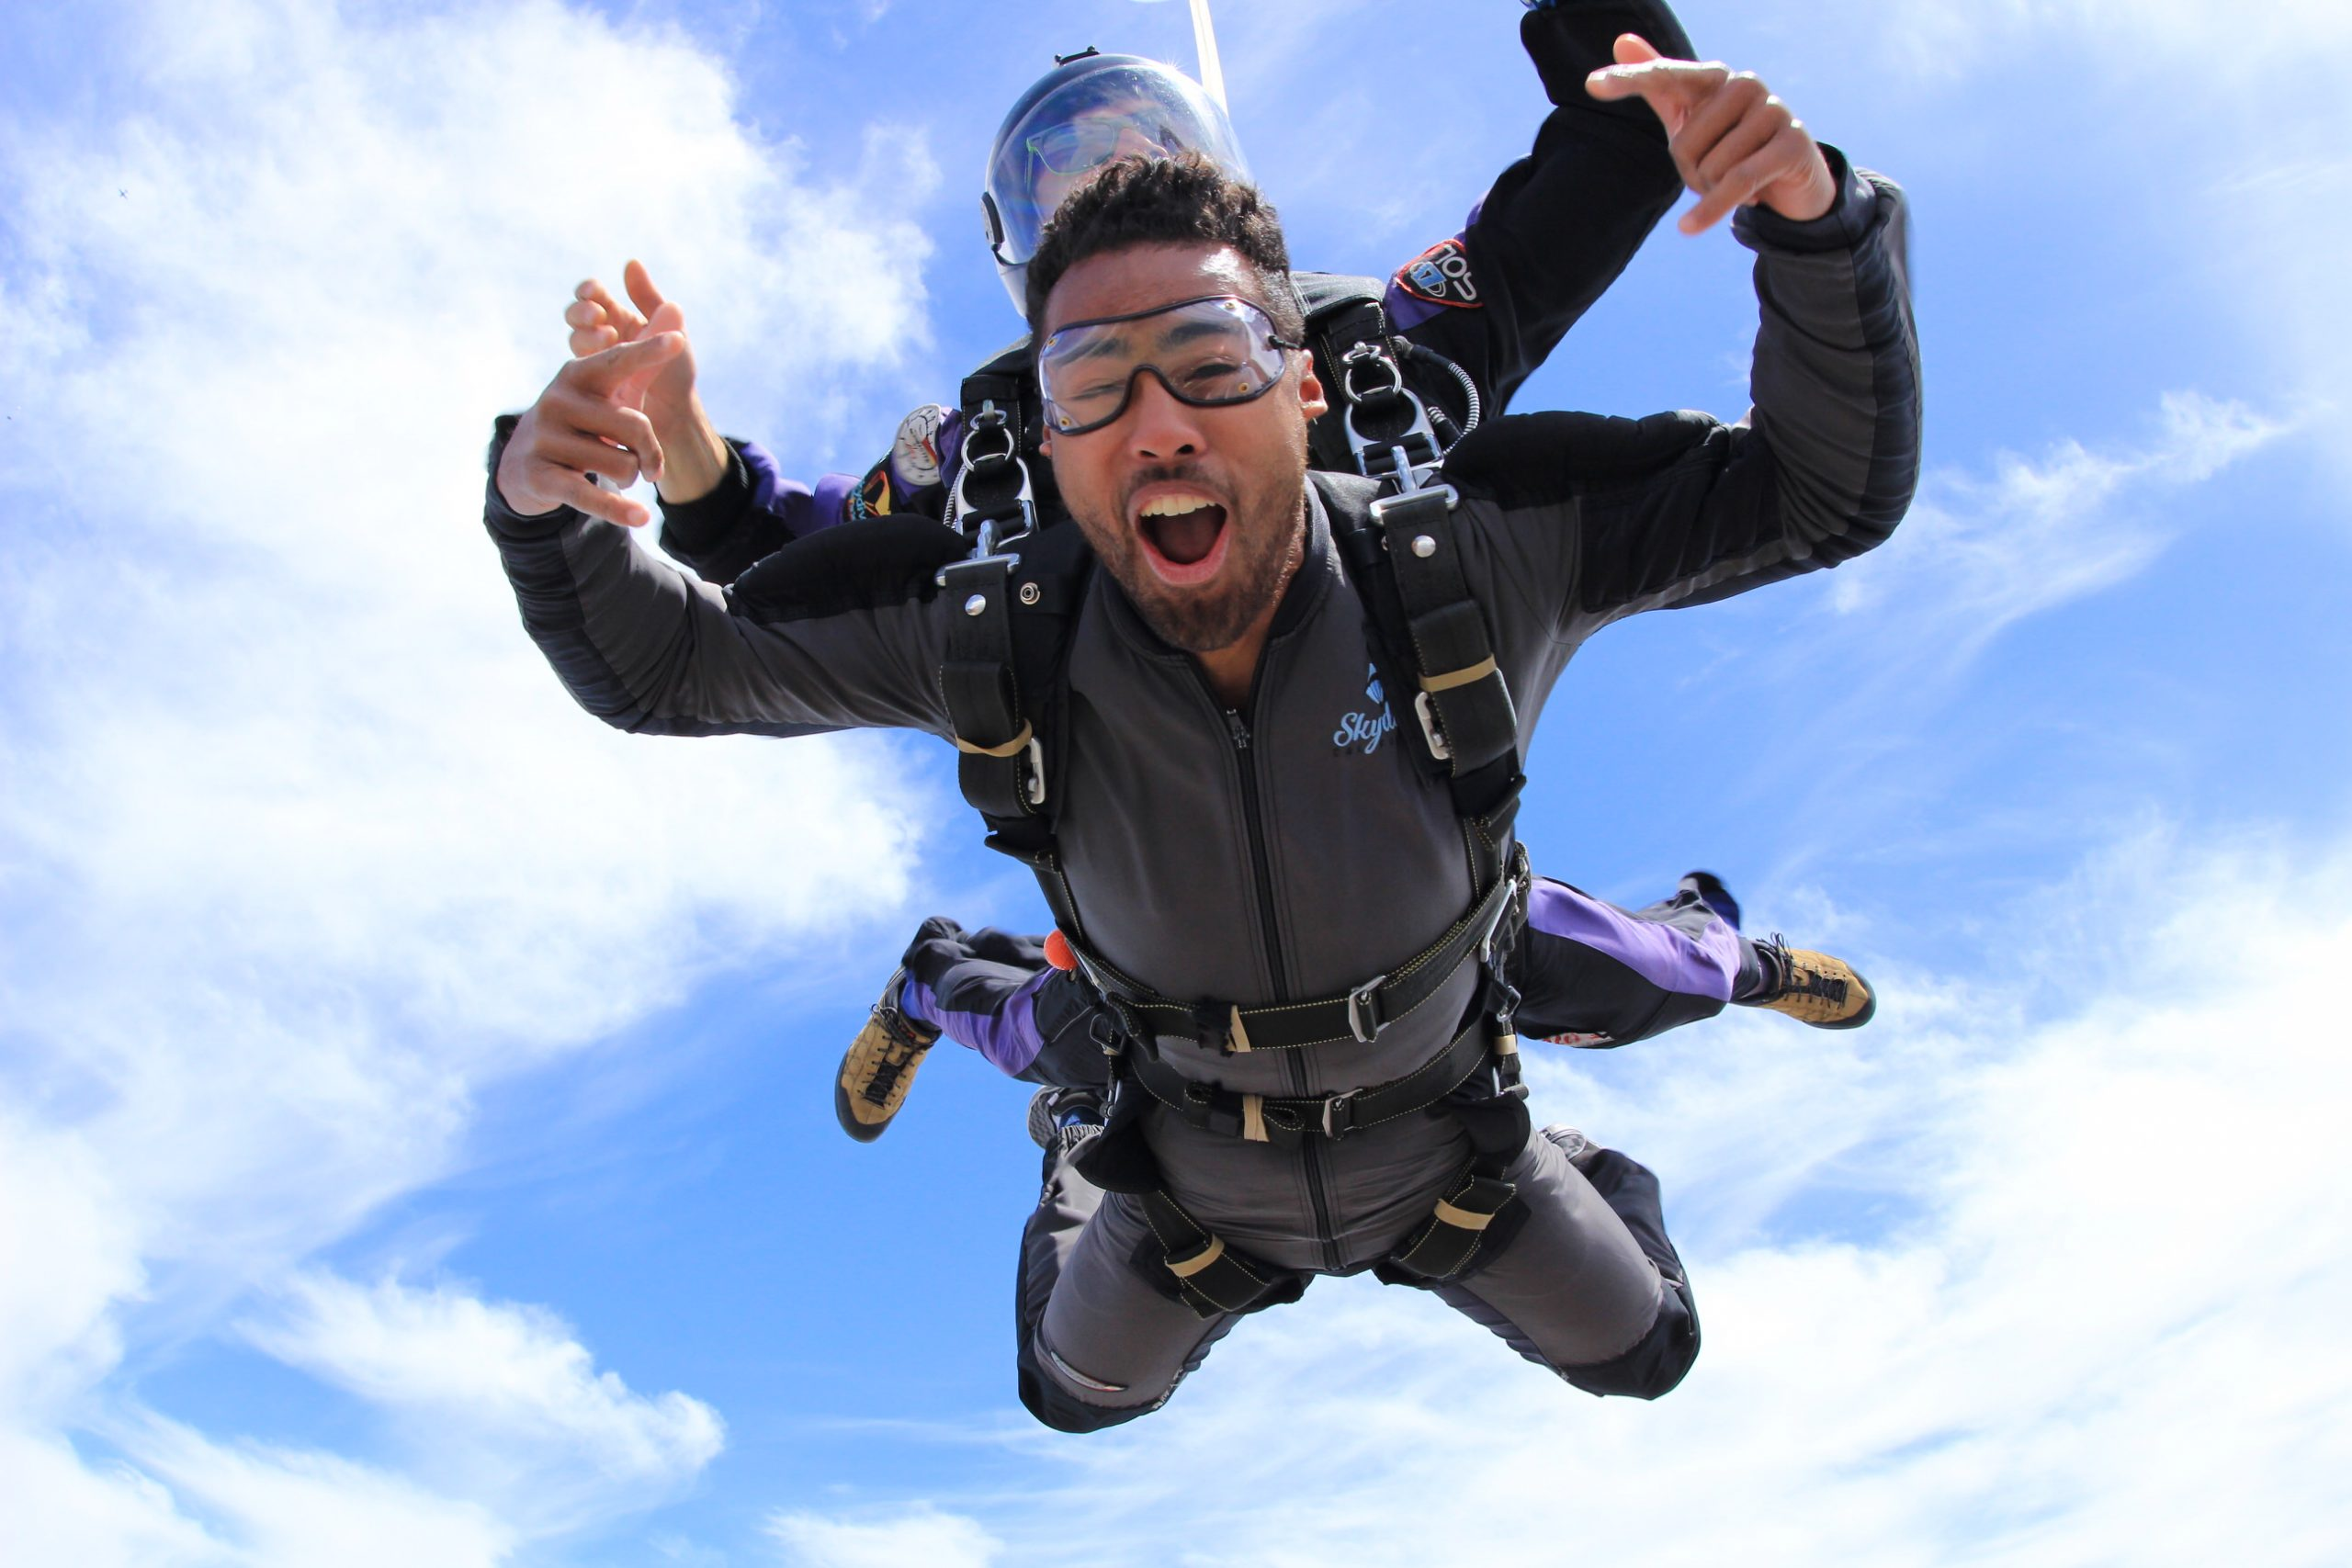 scared to skydive skydiving feel like breathe while skydiving skydiving positions